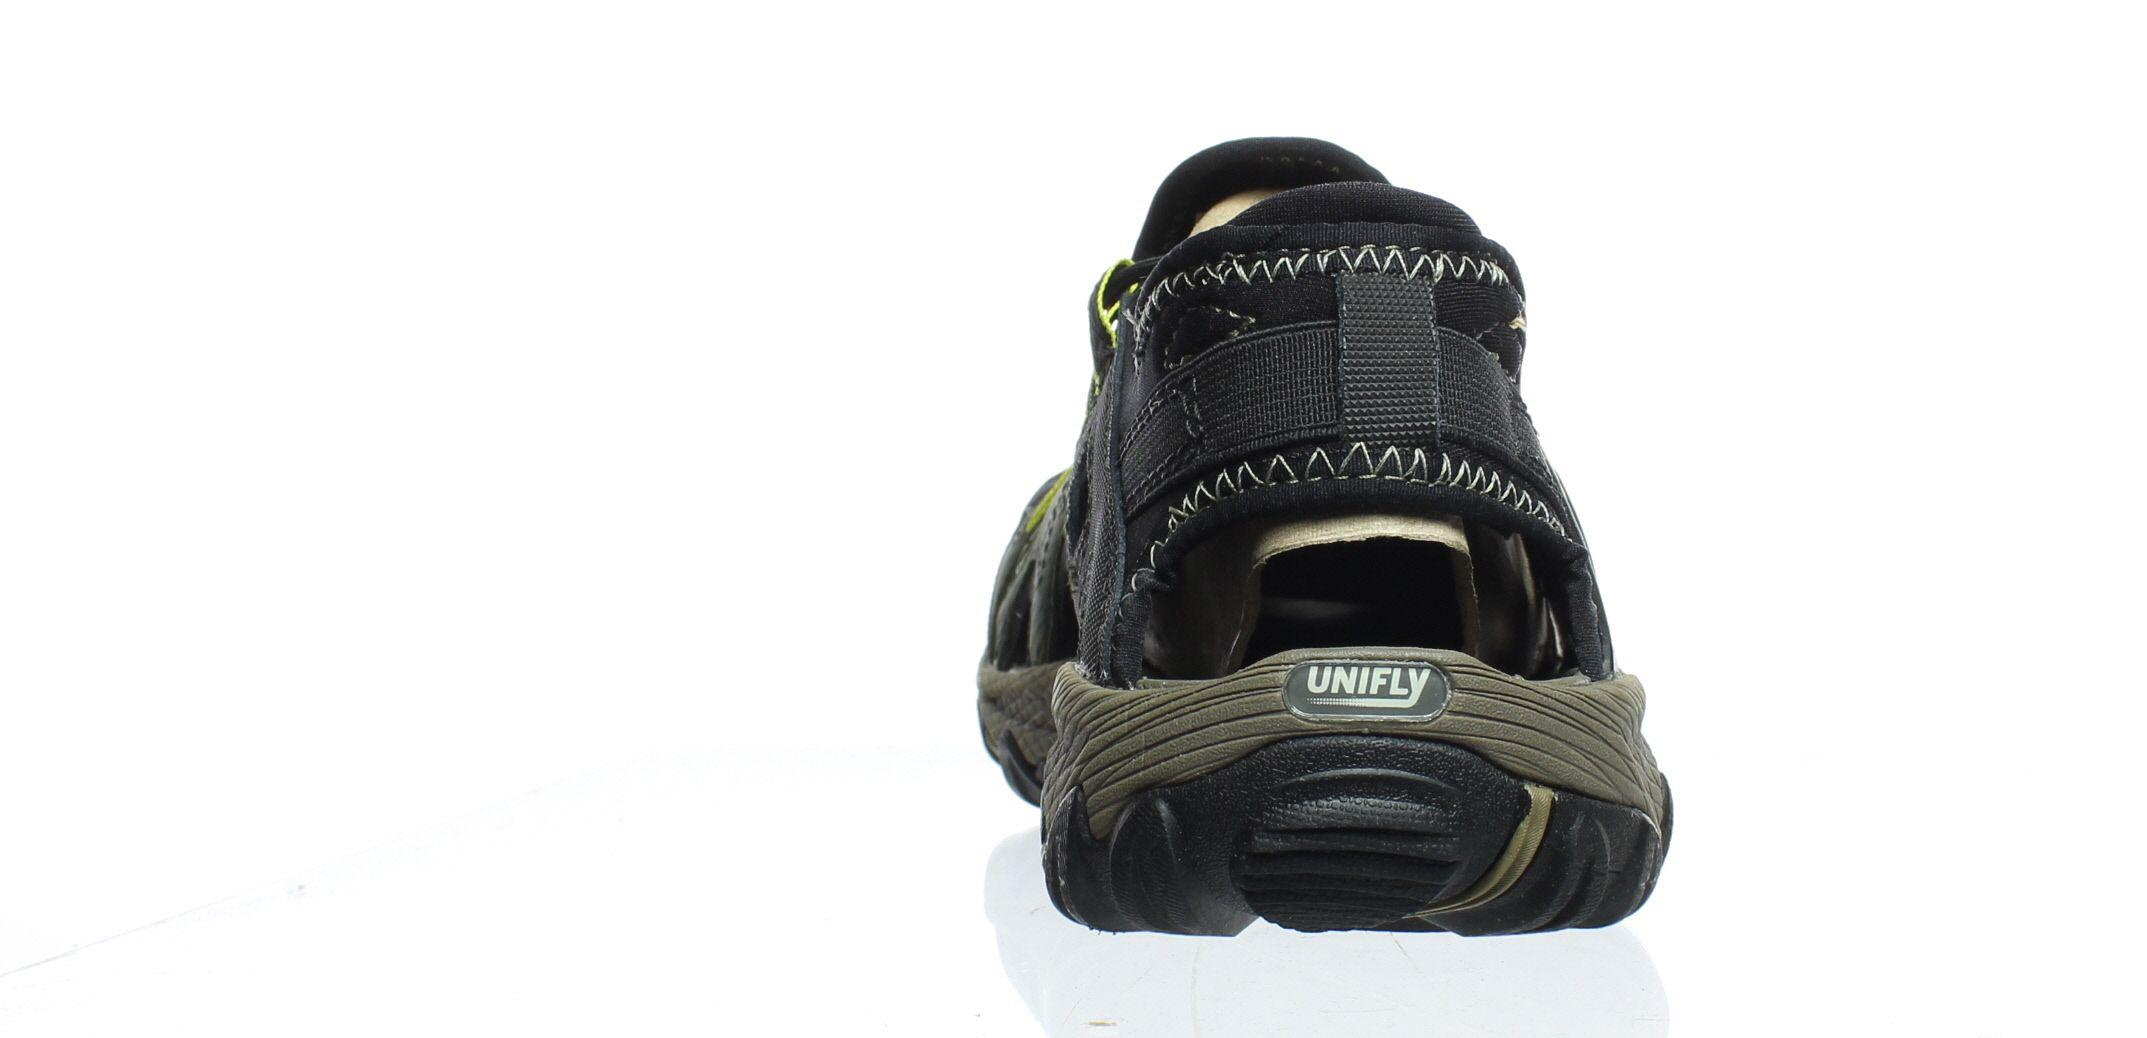 58b76d26b3a0 Merrell - Multicolor Mens All Out Blaze Olive Night Fisherman Sandals for  Men - Lyst. View fullscreen